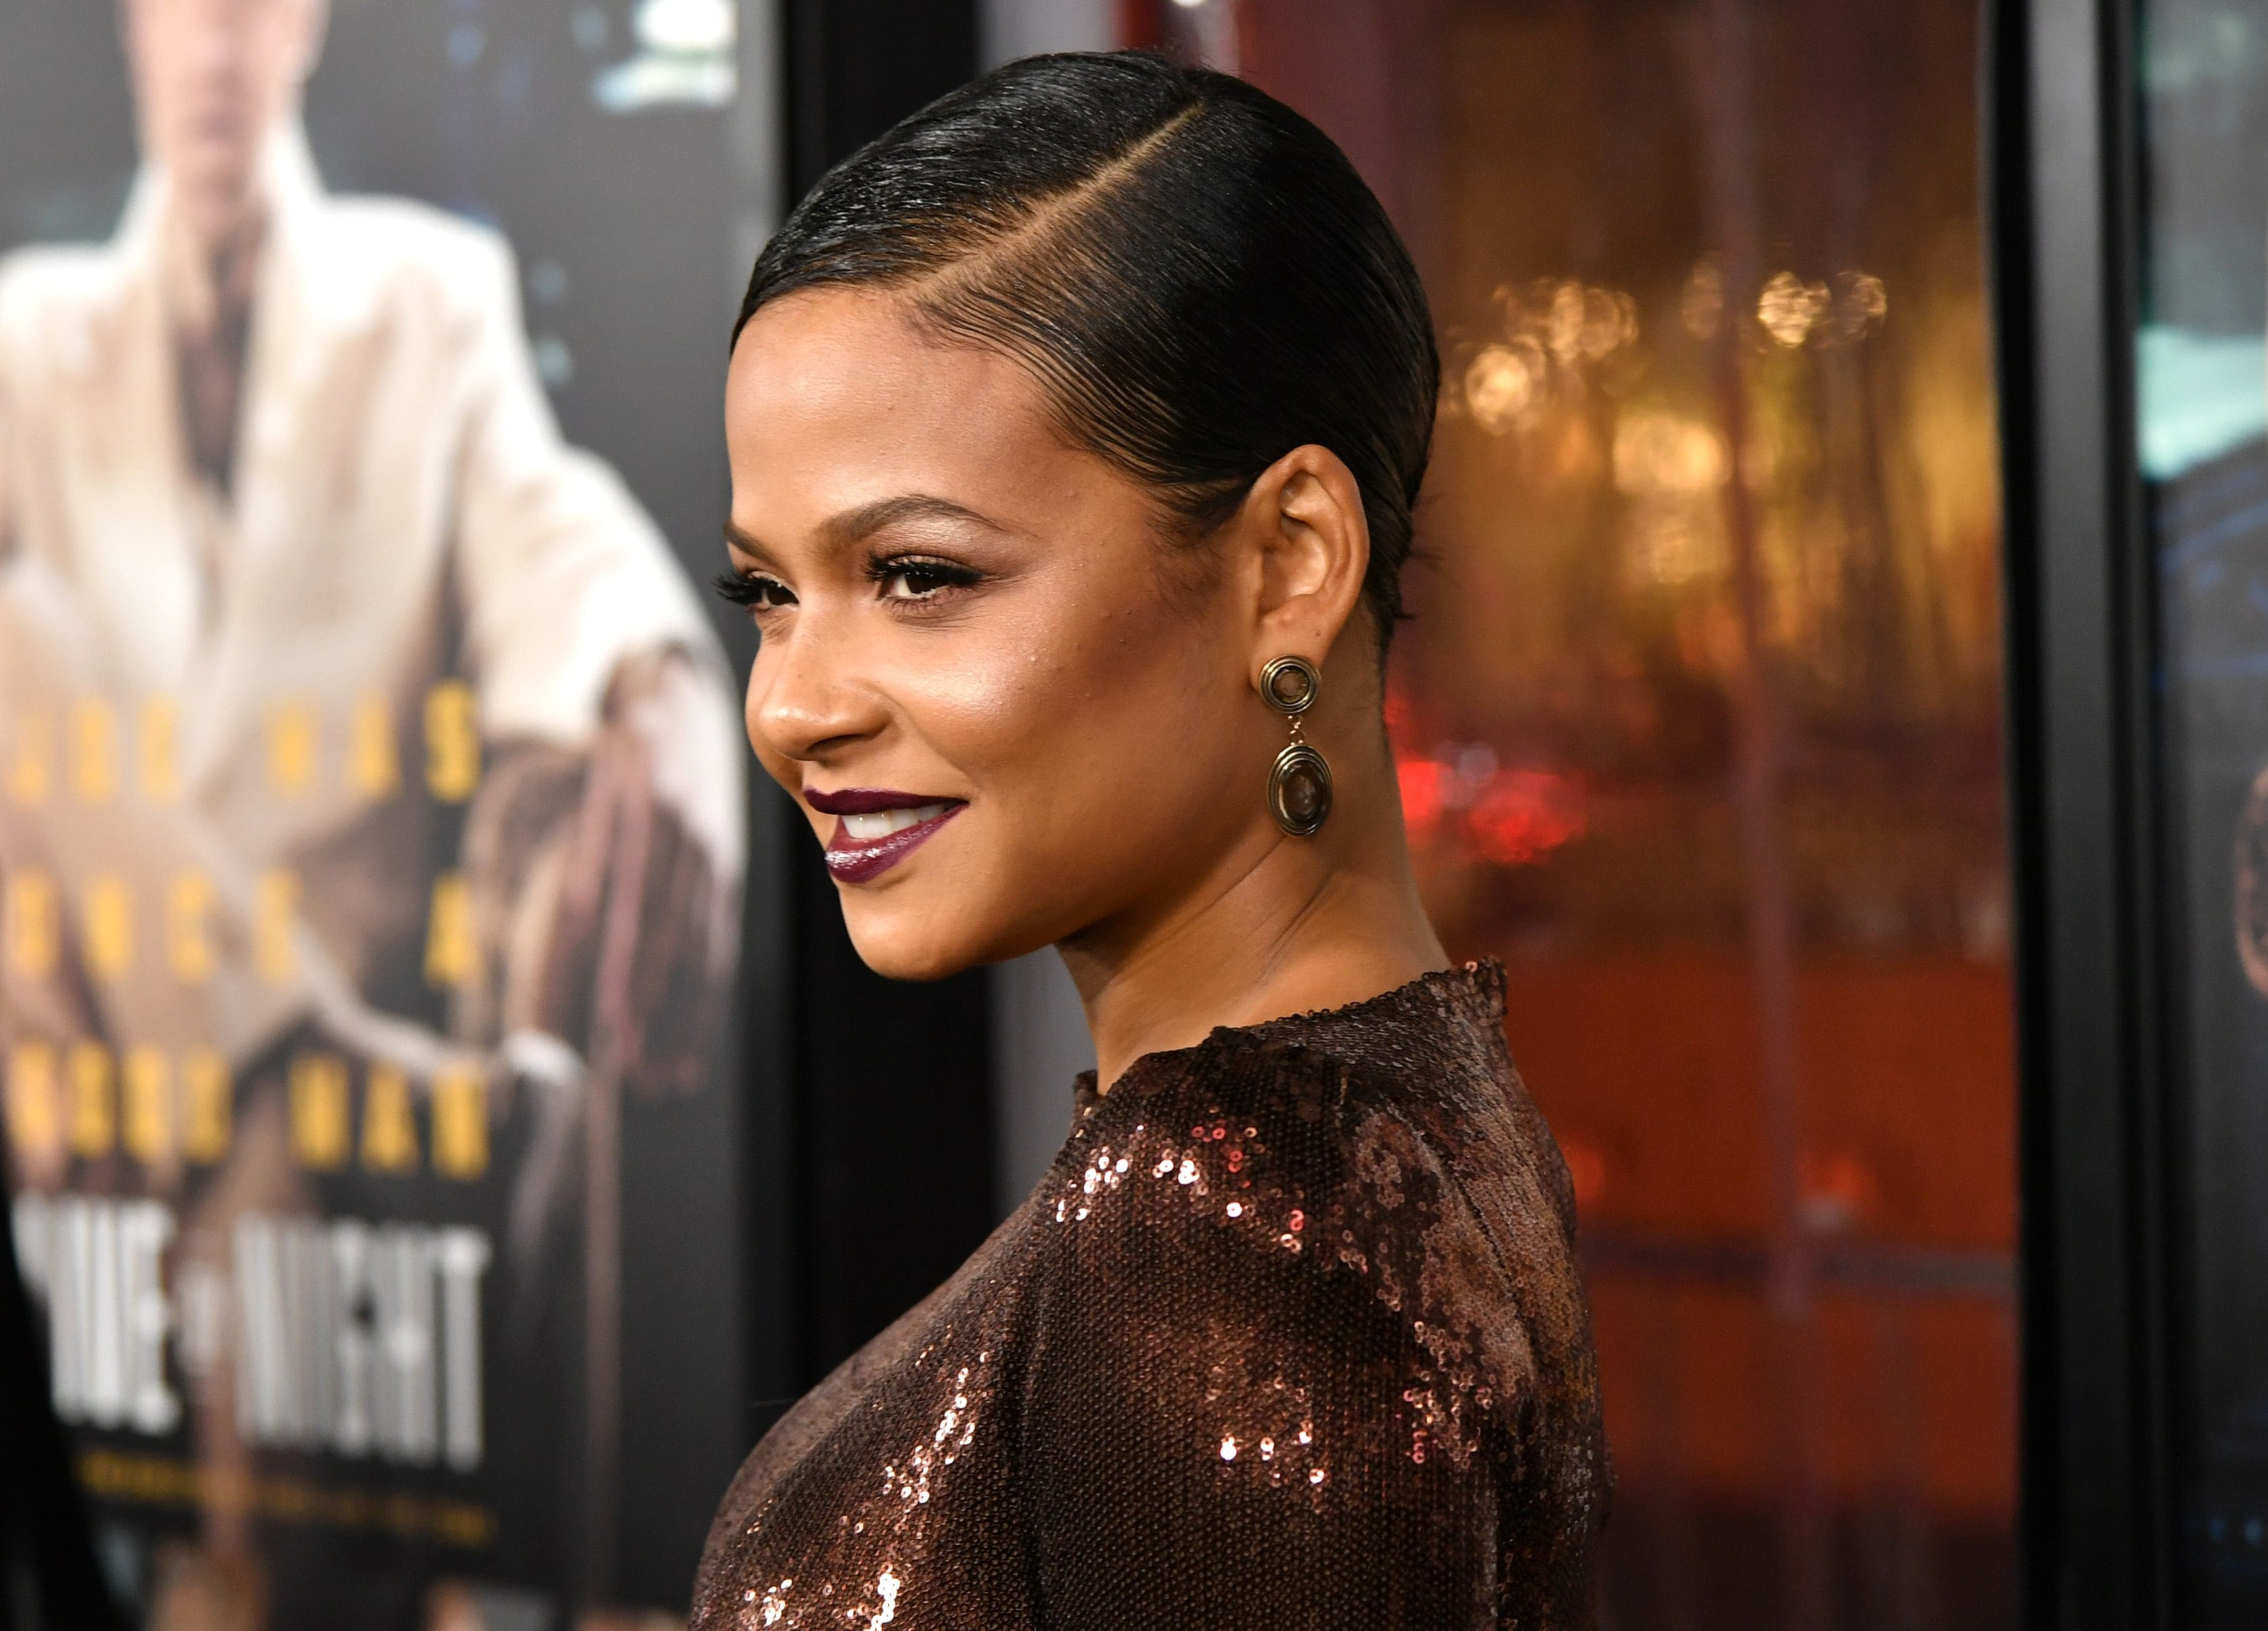 22 Best Short Black Hairstyles And Cuts For Black Women All Things Hair